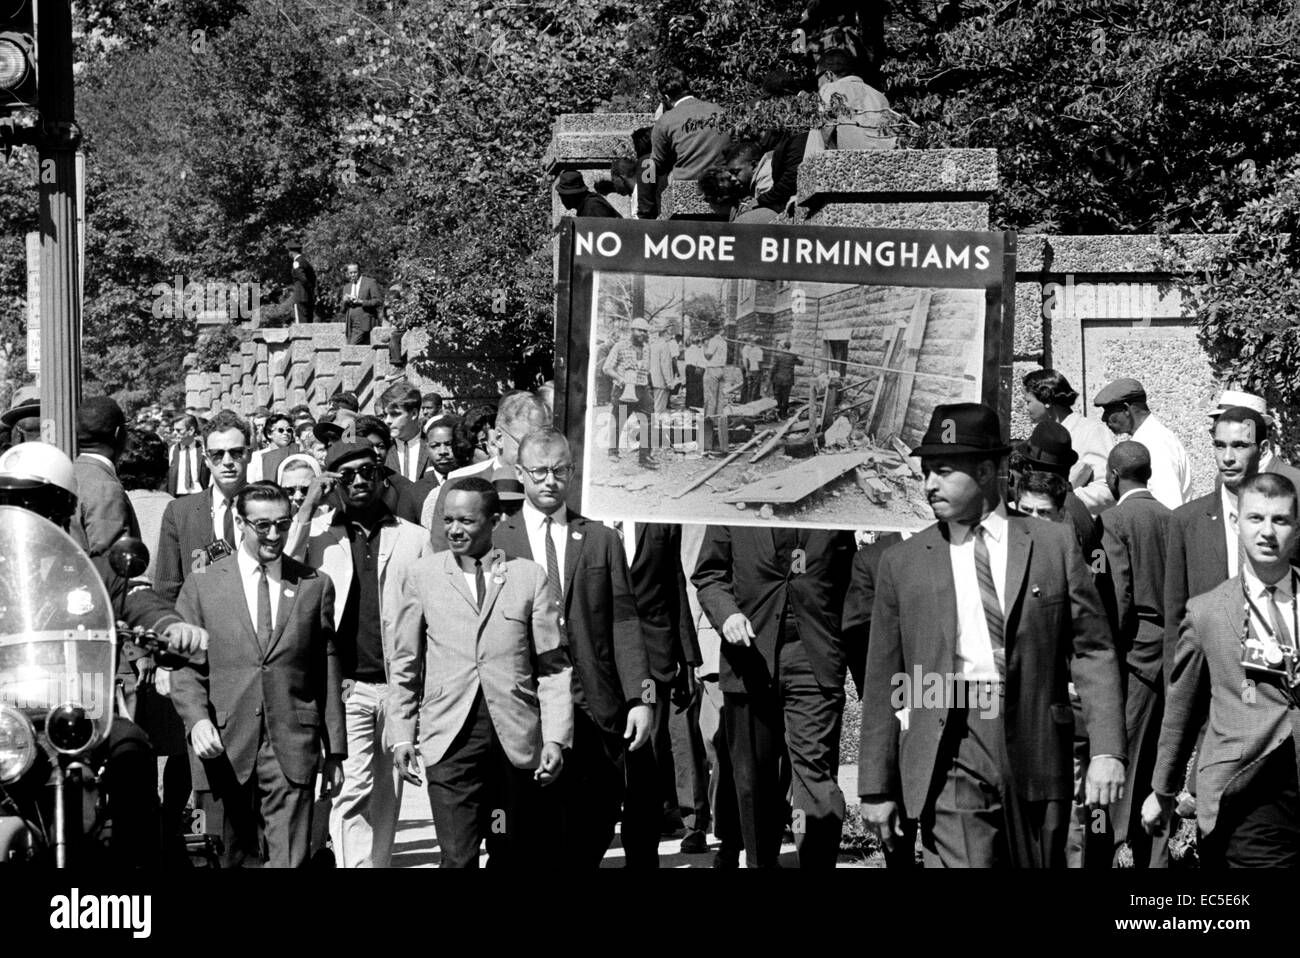 Congress of Racial Equality conducts march in memory of Negro youngsters killed in Birmingham bombings, All Souls - Stock Image